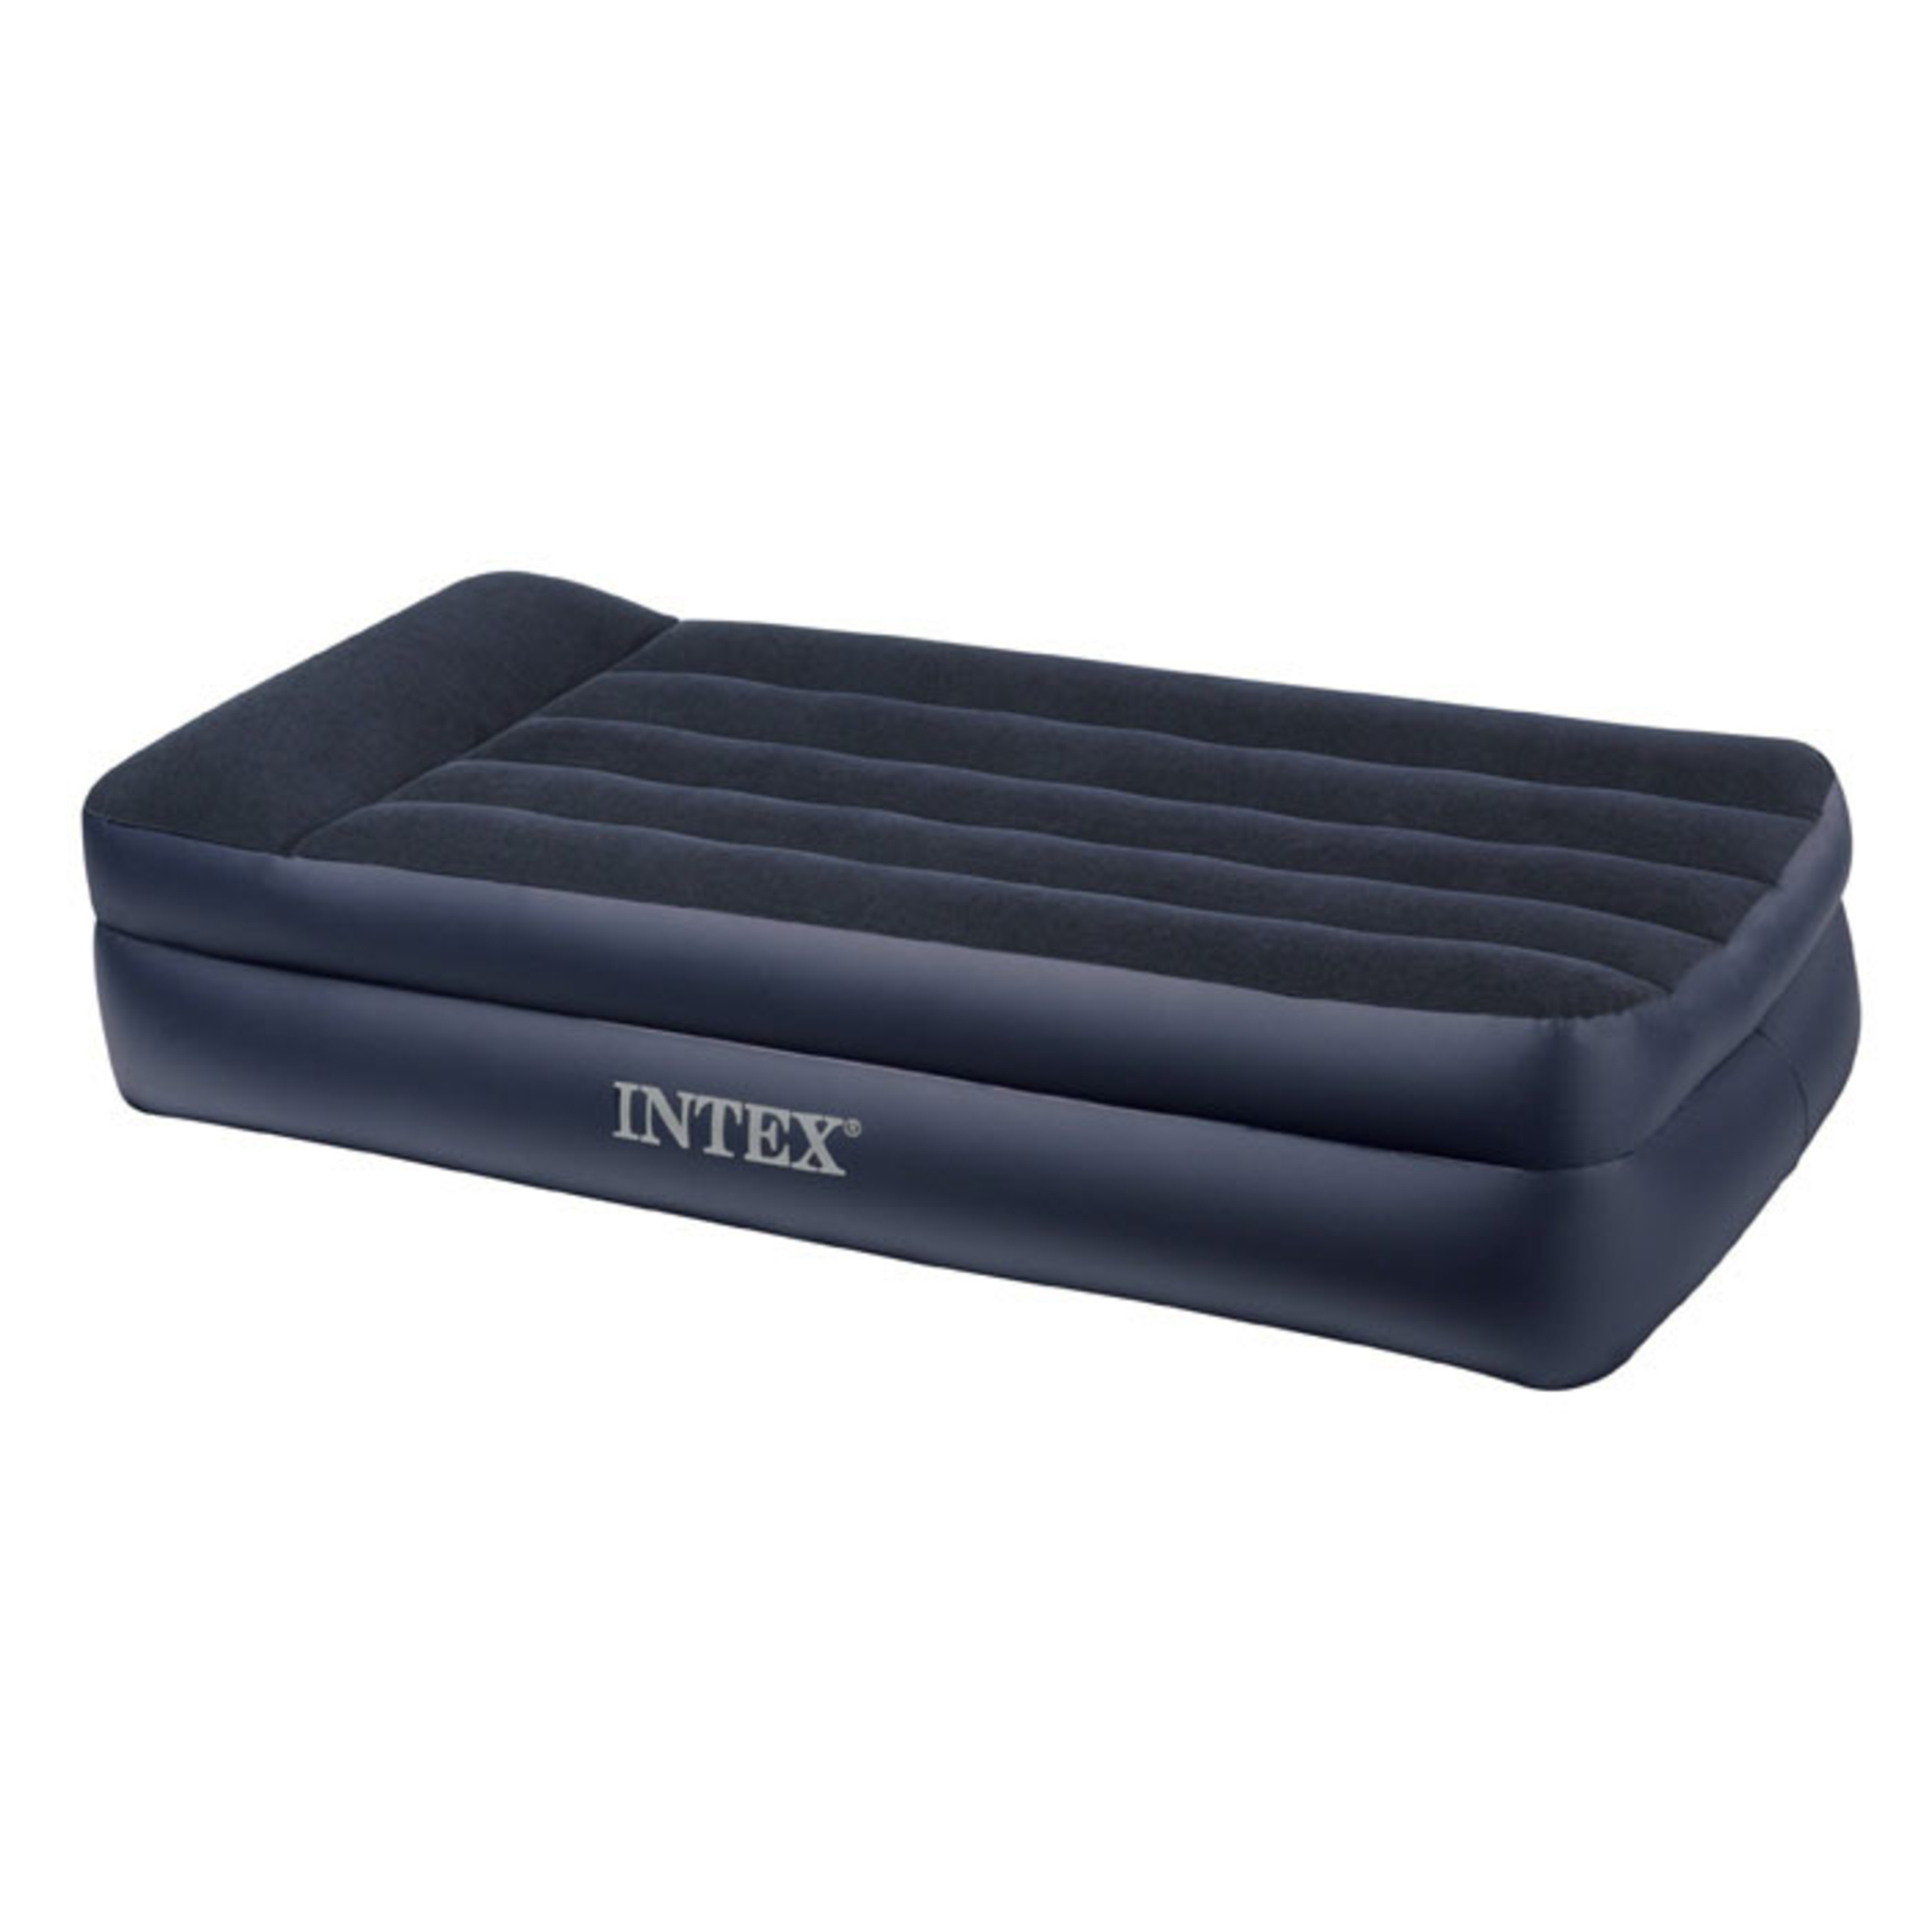 intex cmatelas gonflable downy tente 2 places catgorie. Black Bedroom Furniture Sets. Home Design Ideas